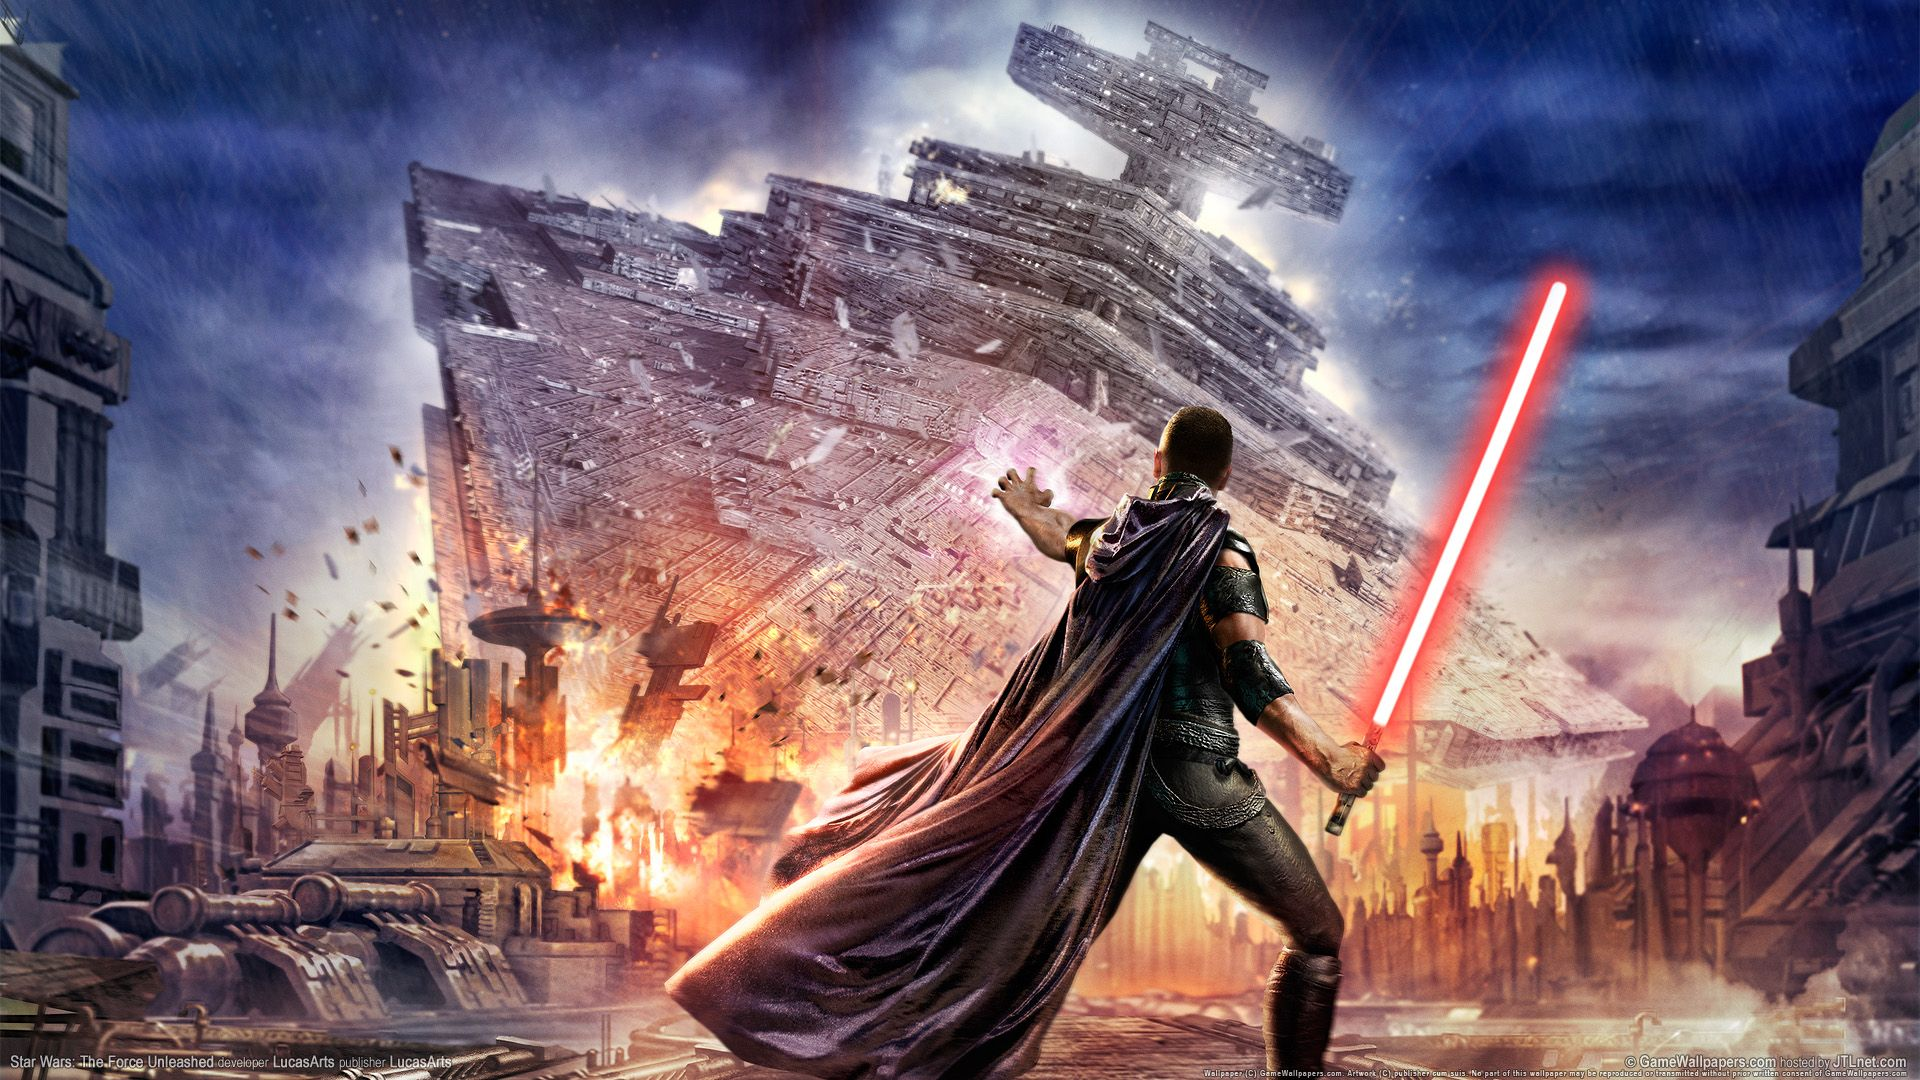 Epic Video Game Wallpapers Star Wars The Force Unleashed Star Wars Games Star Wars Poster Star Wars Wallpaper